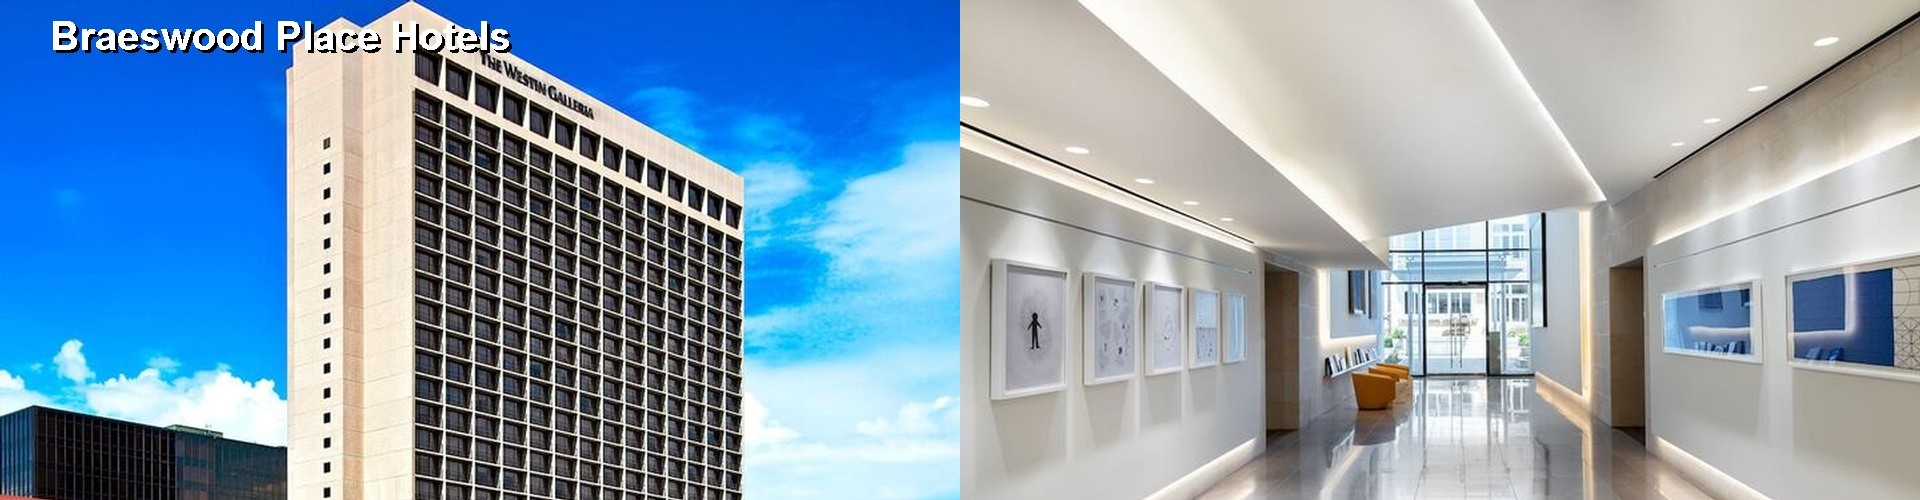 5 Best Hotels near Braeswood Place